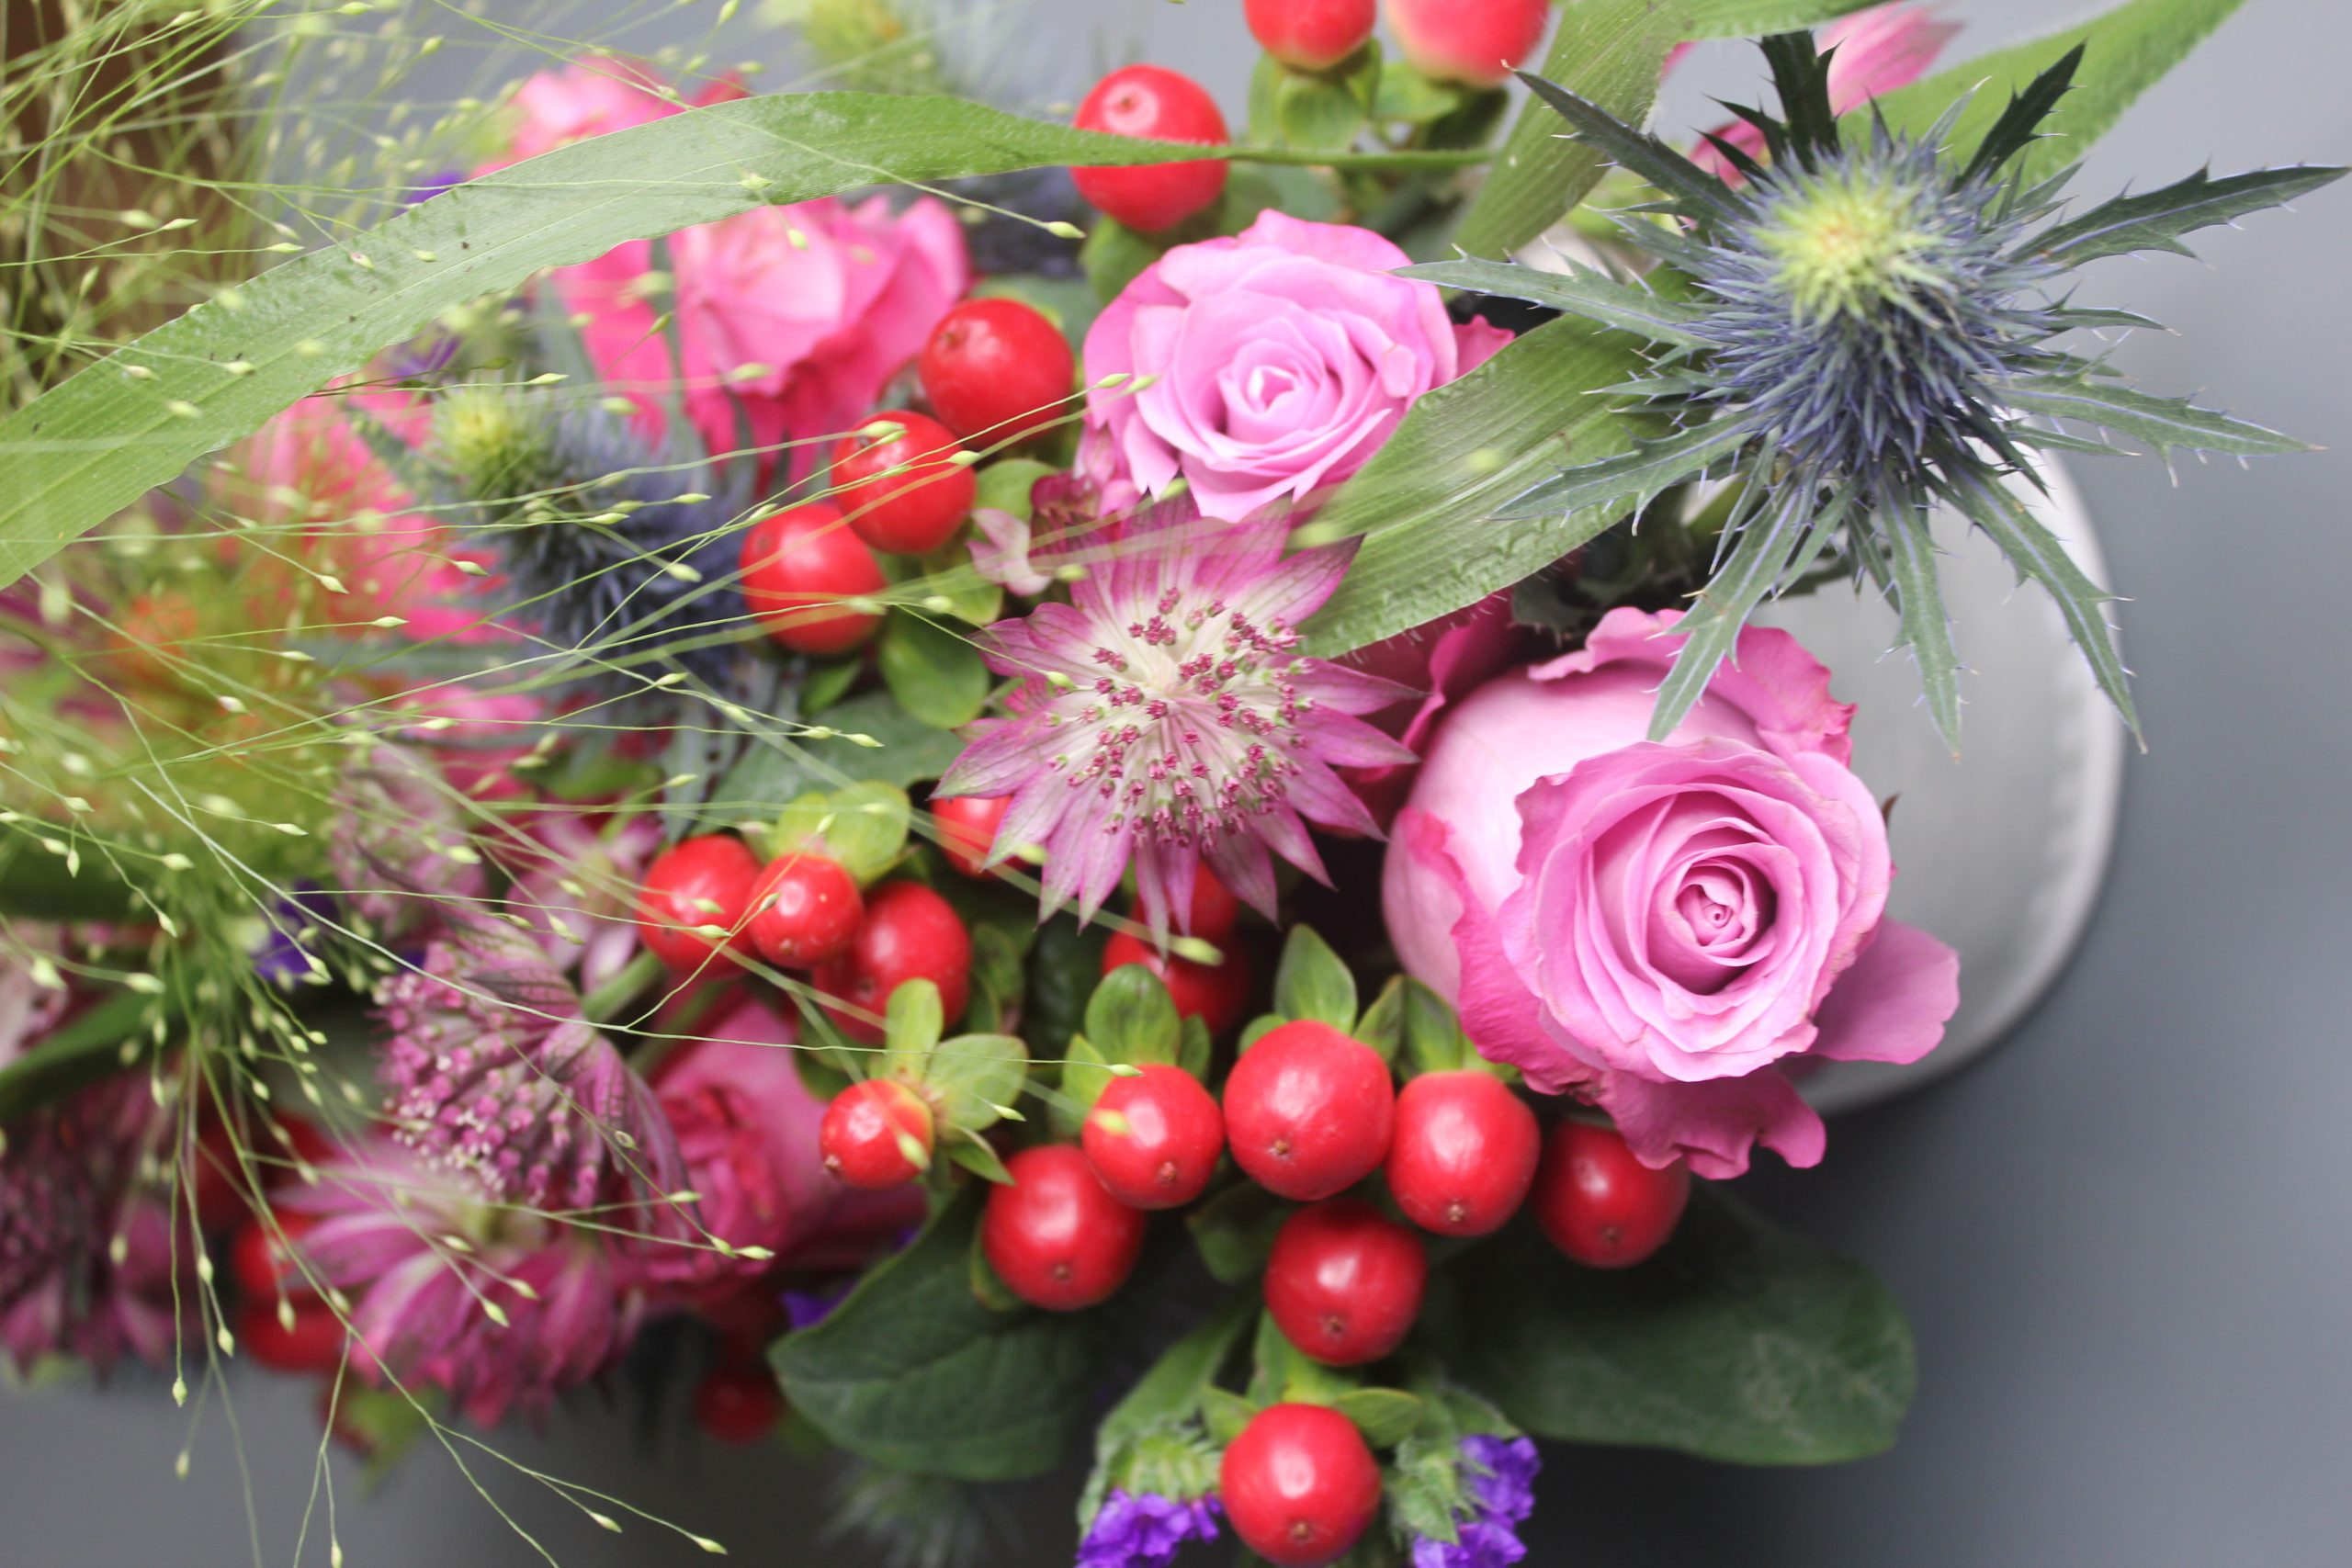 pink-roses-berries-bouquet-close-up